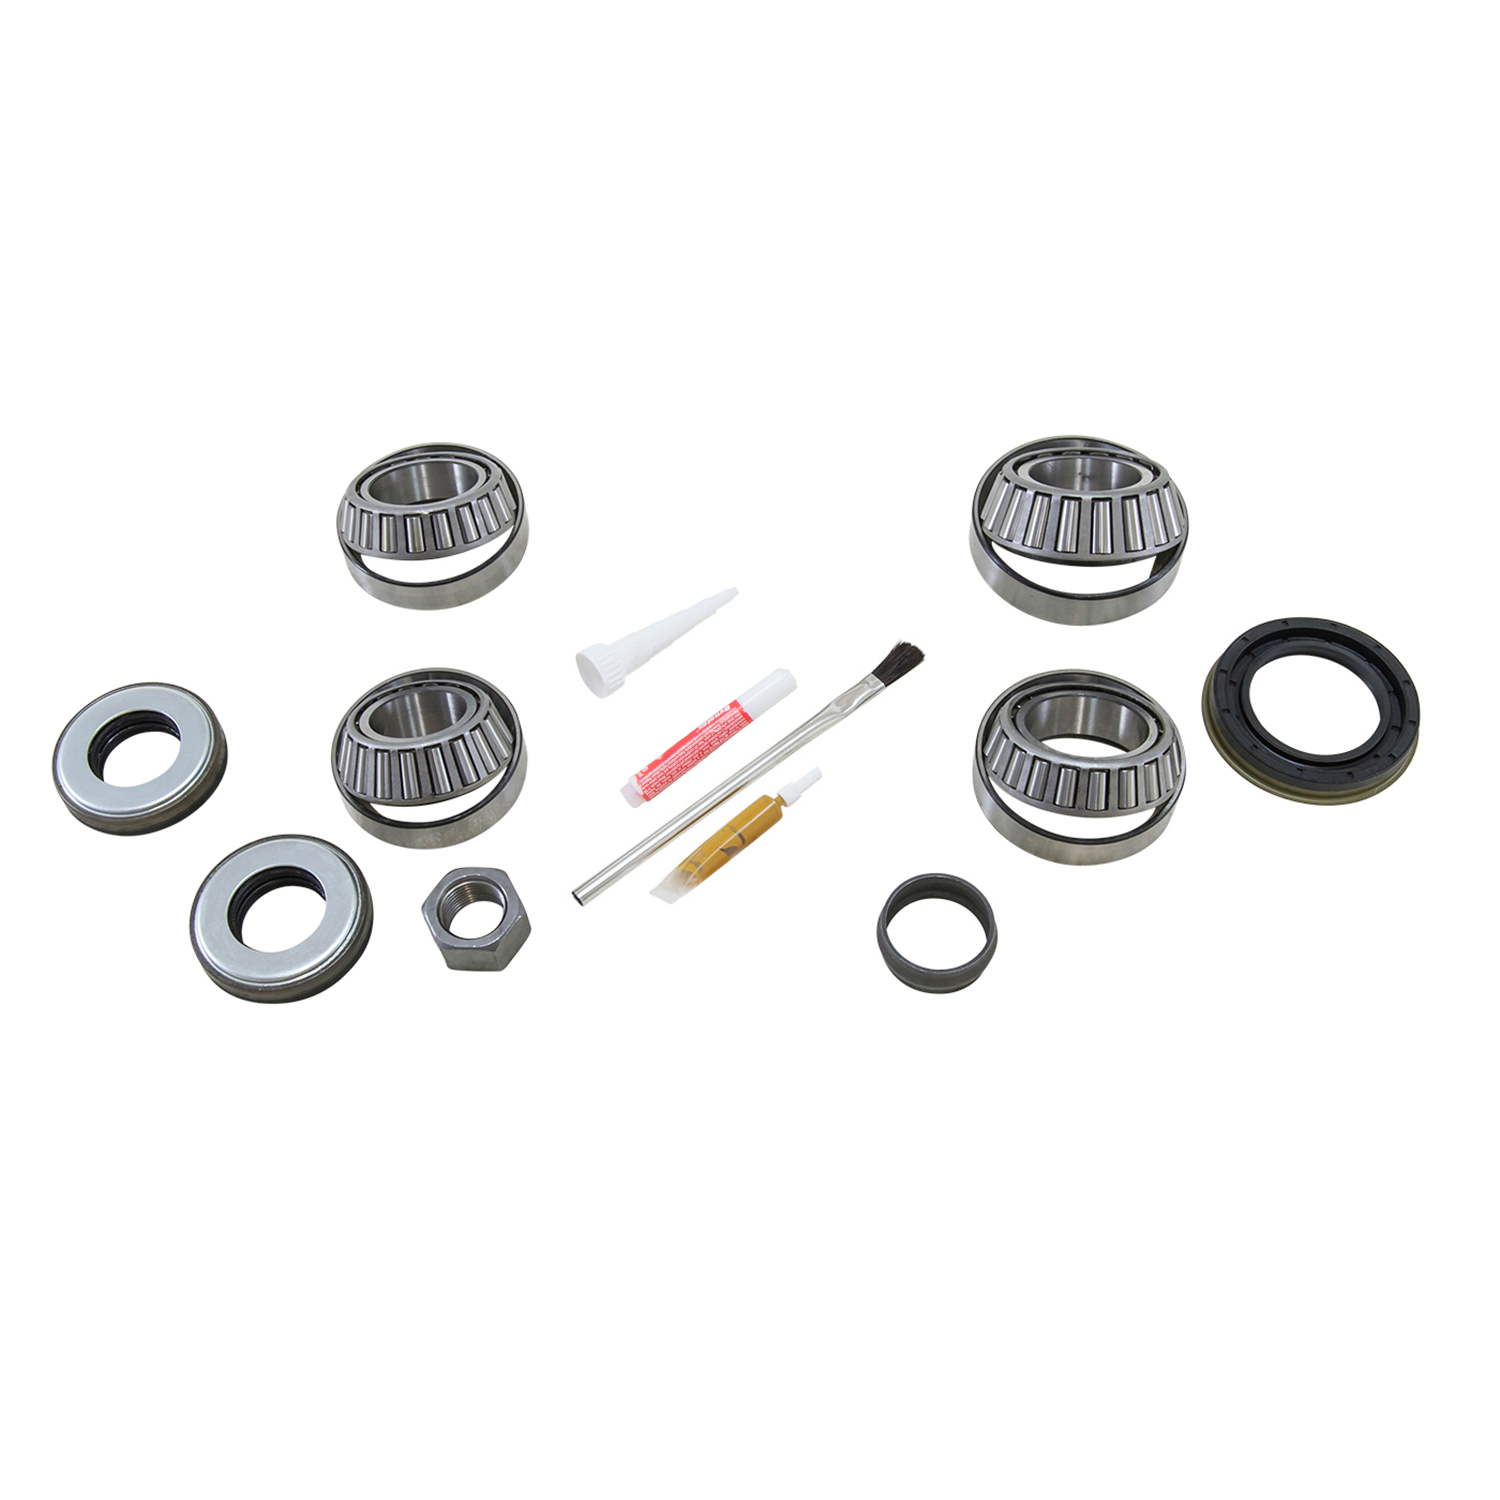 ZBKGM9.5-B - USA Standard Bearing kit for '98-'13 GM 9.5